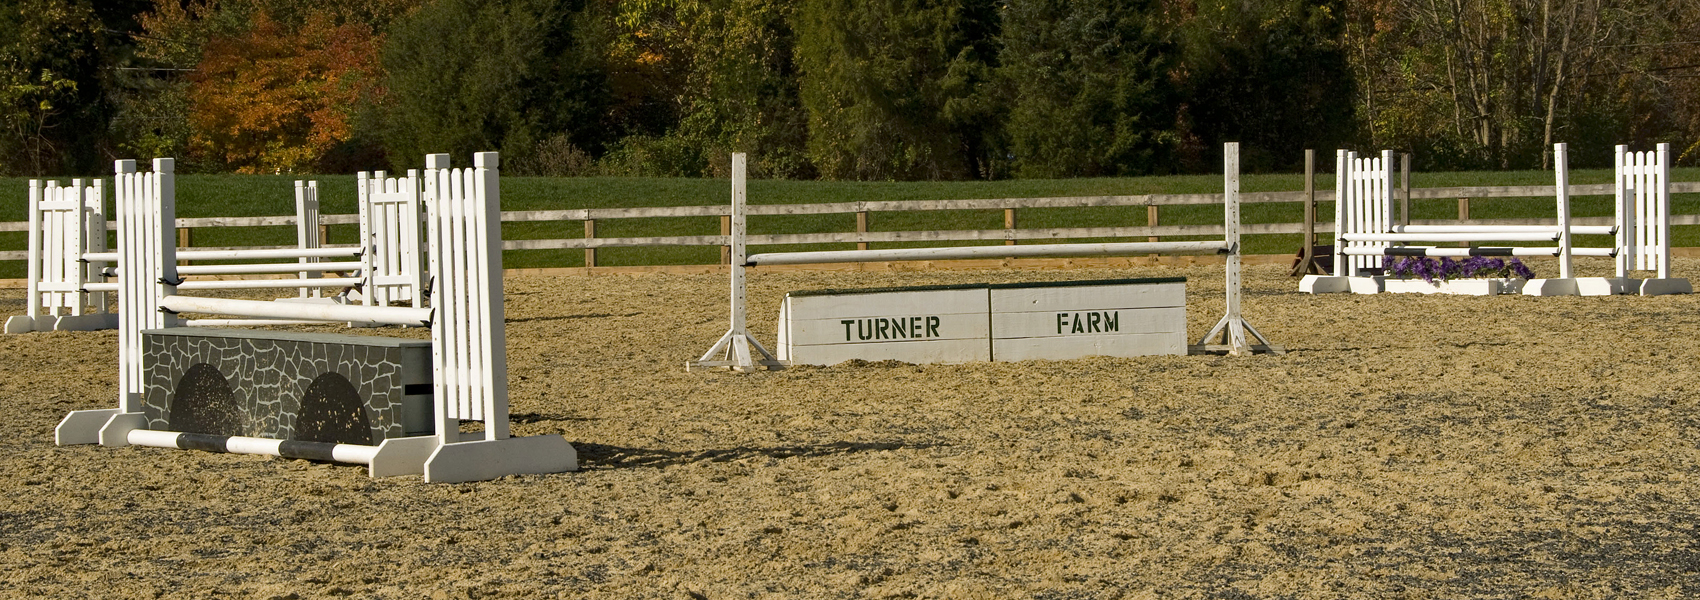 A series of jumps in the Turner Farm riding ring